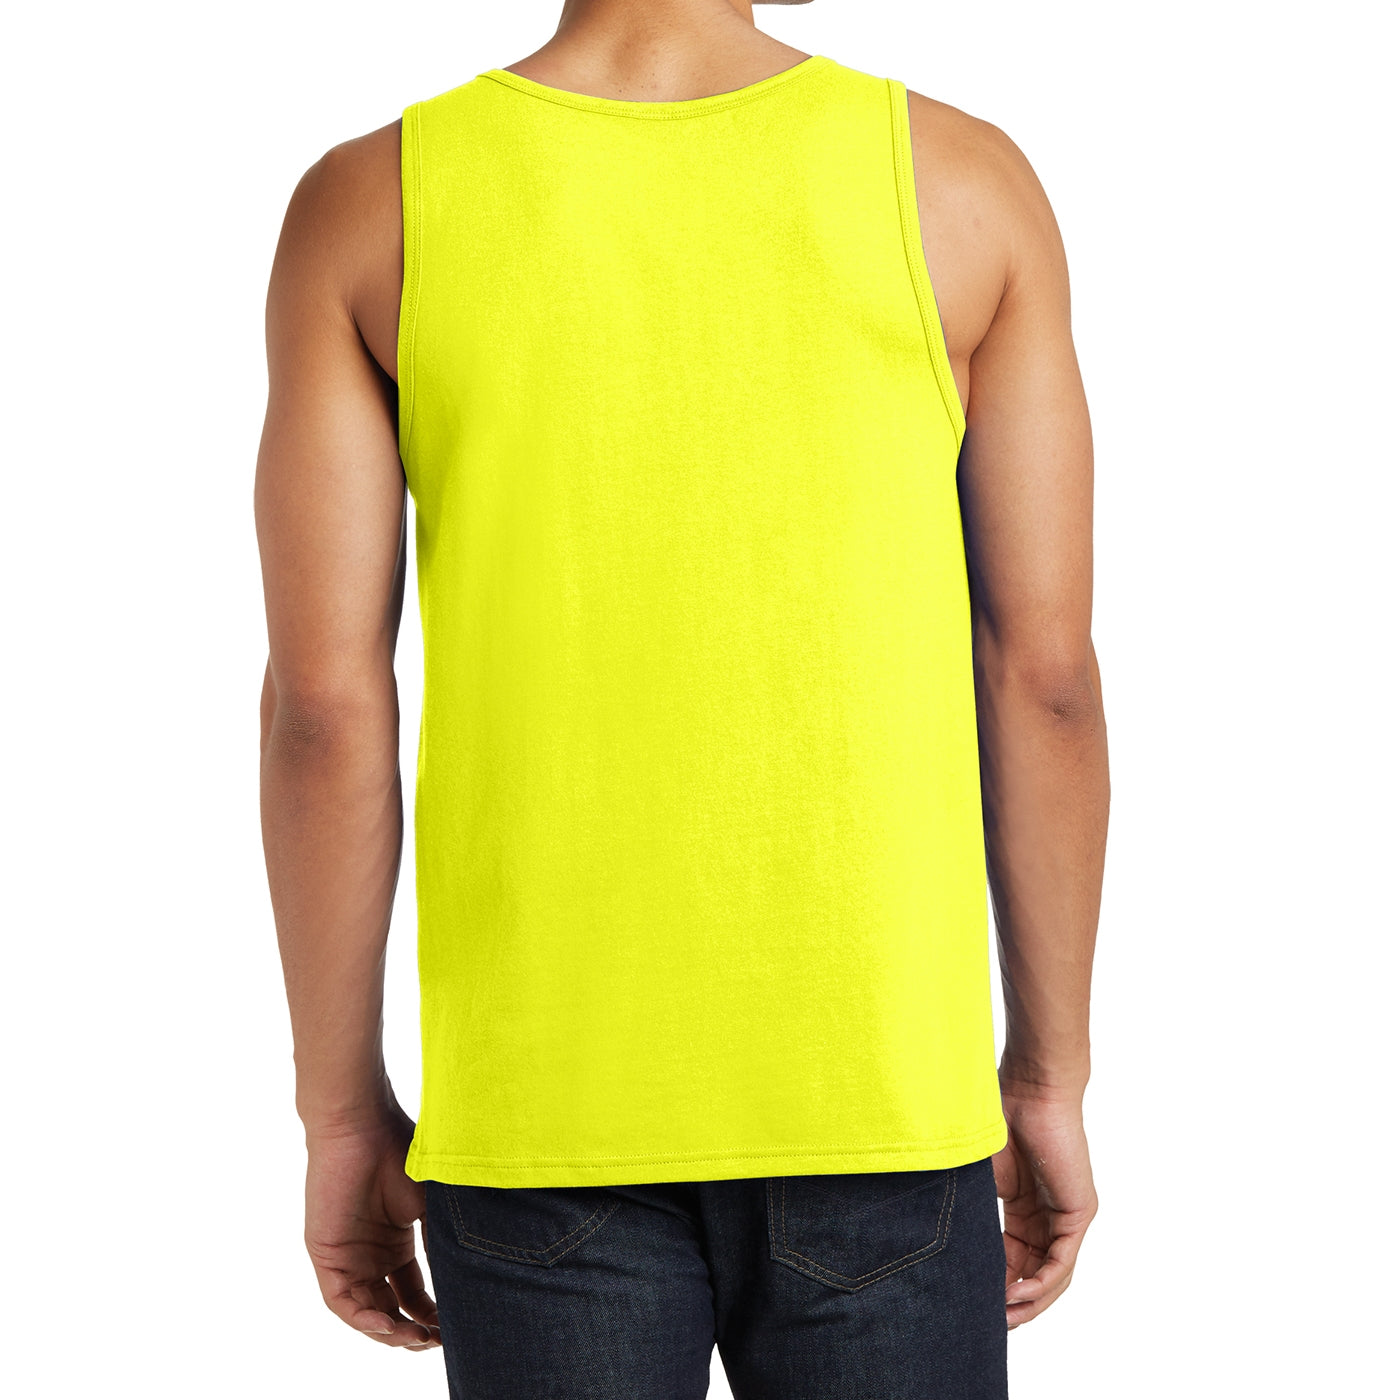 Men's District Young The Concert Tank - Neon Yellow